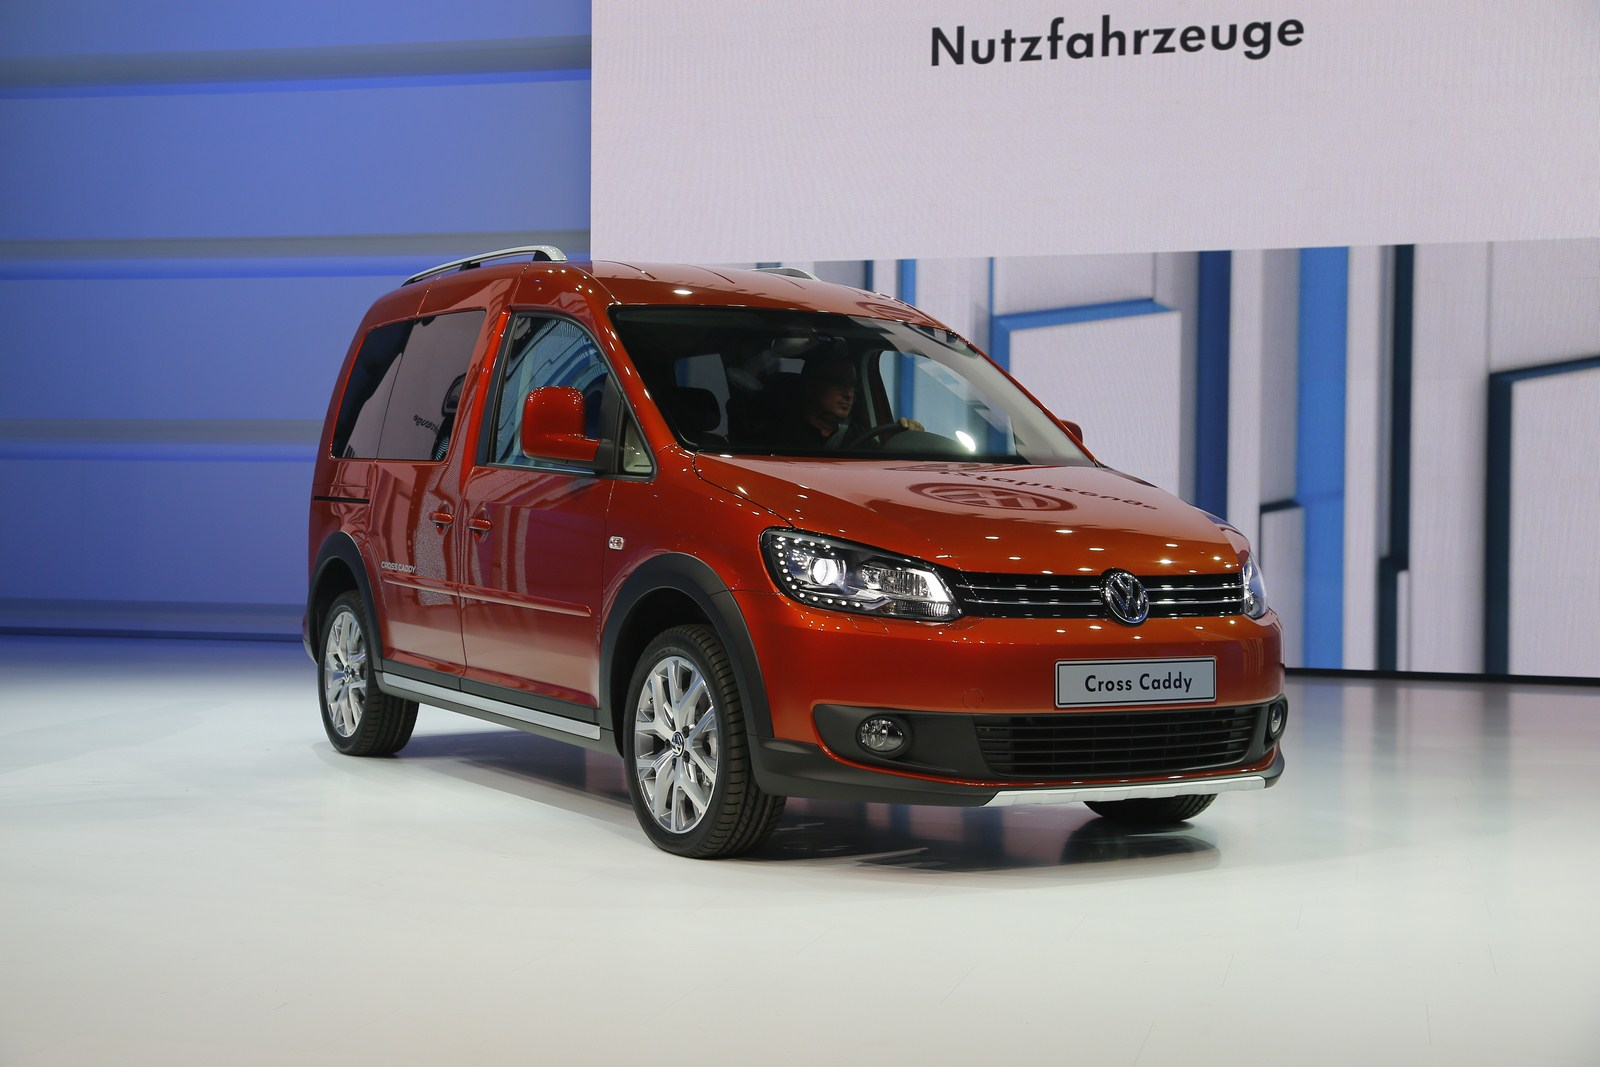 paris 2012 2013 vw cross caddy live first photos garage car